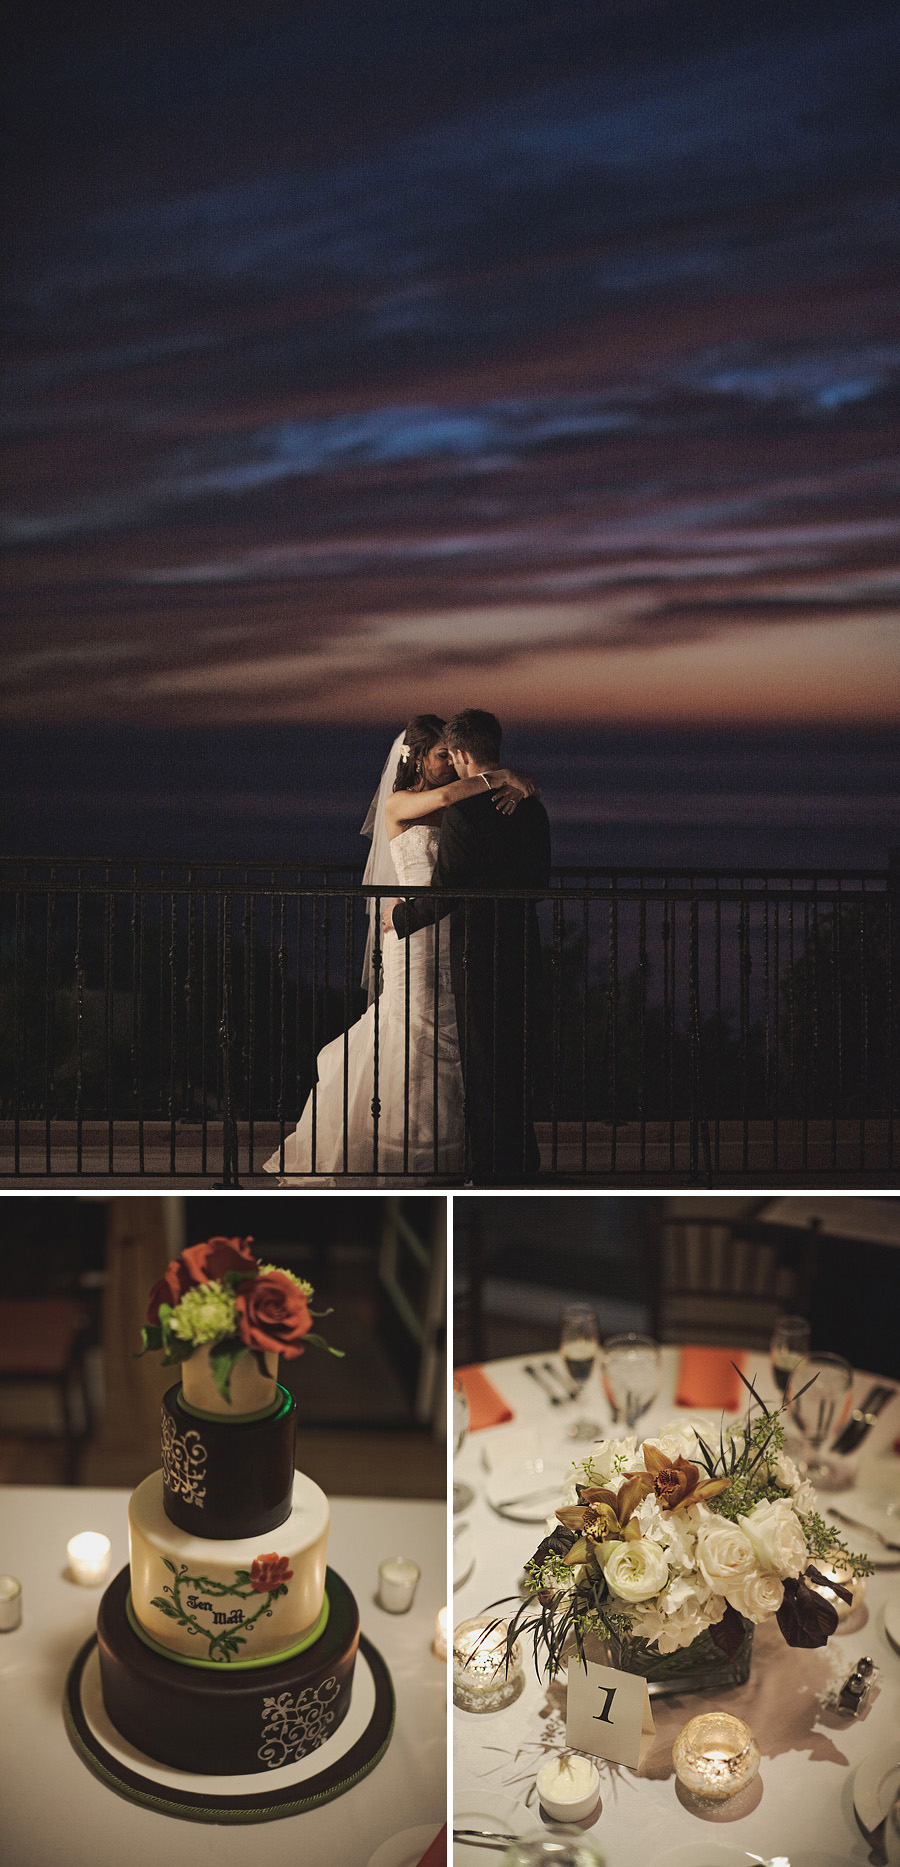 Casa Romantica Wedding Photography San Clemente Ole Hanson 018